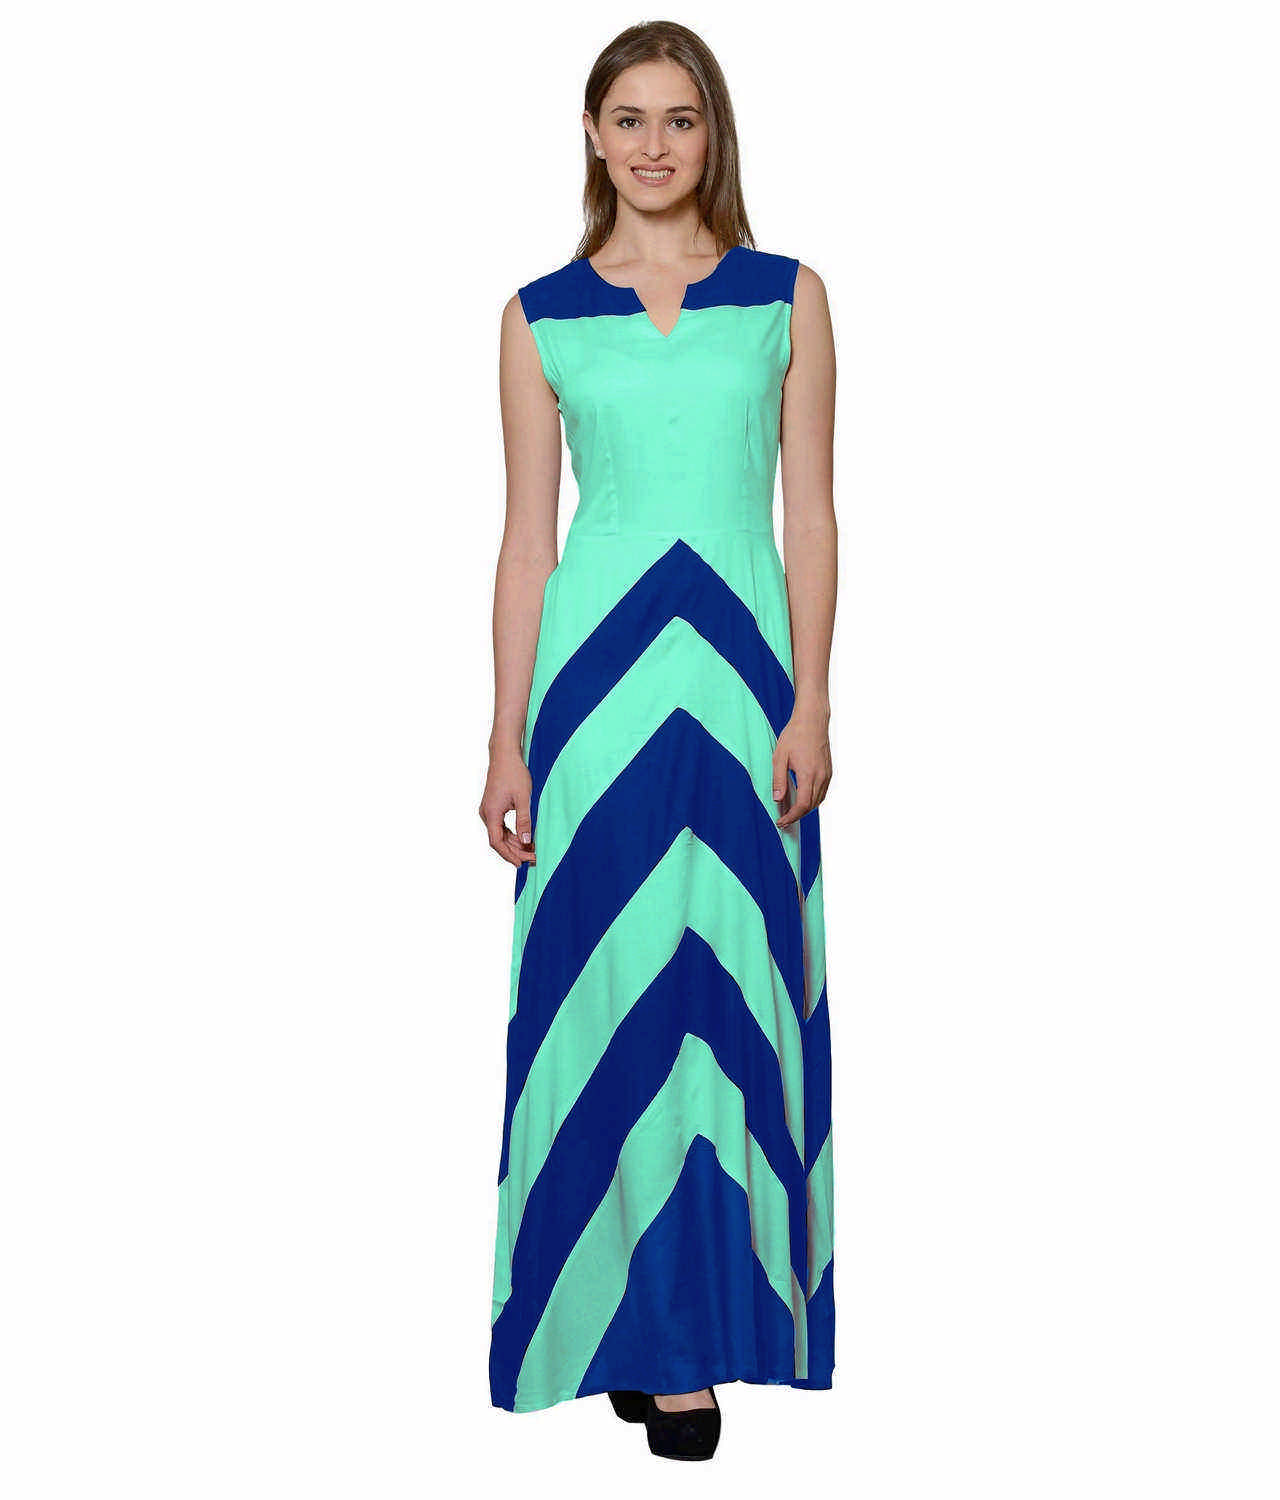 Color Block Empire Slim Fit Maxi Dress in Turquoise Blue:Teal Green